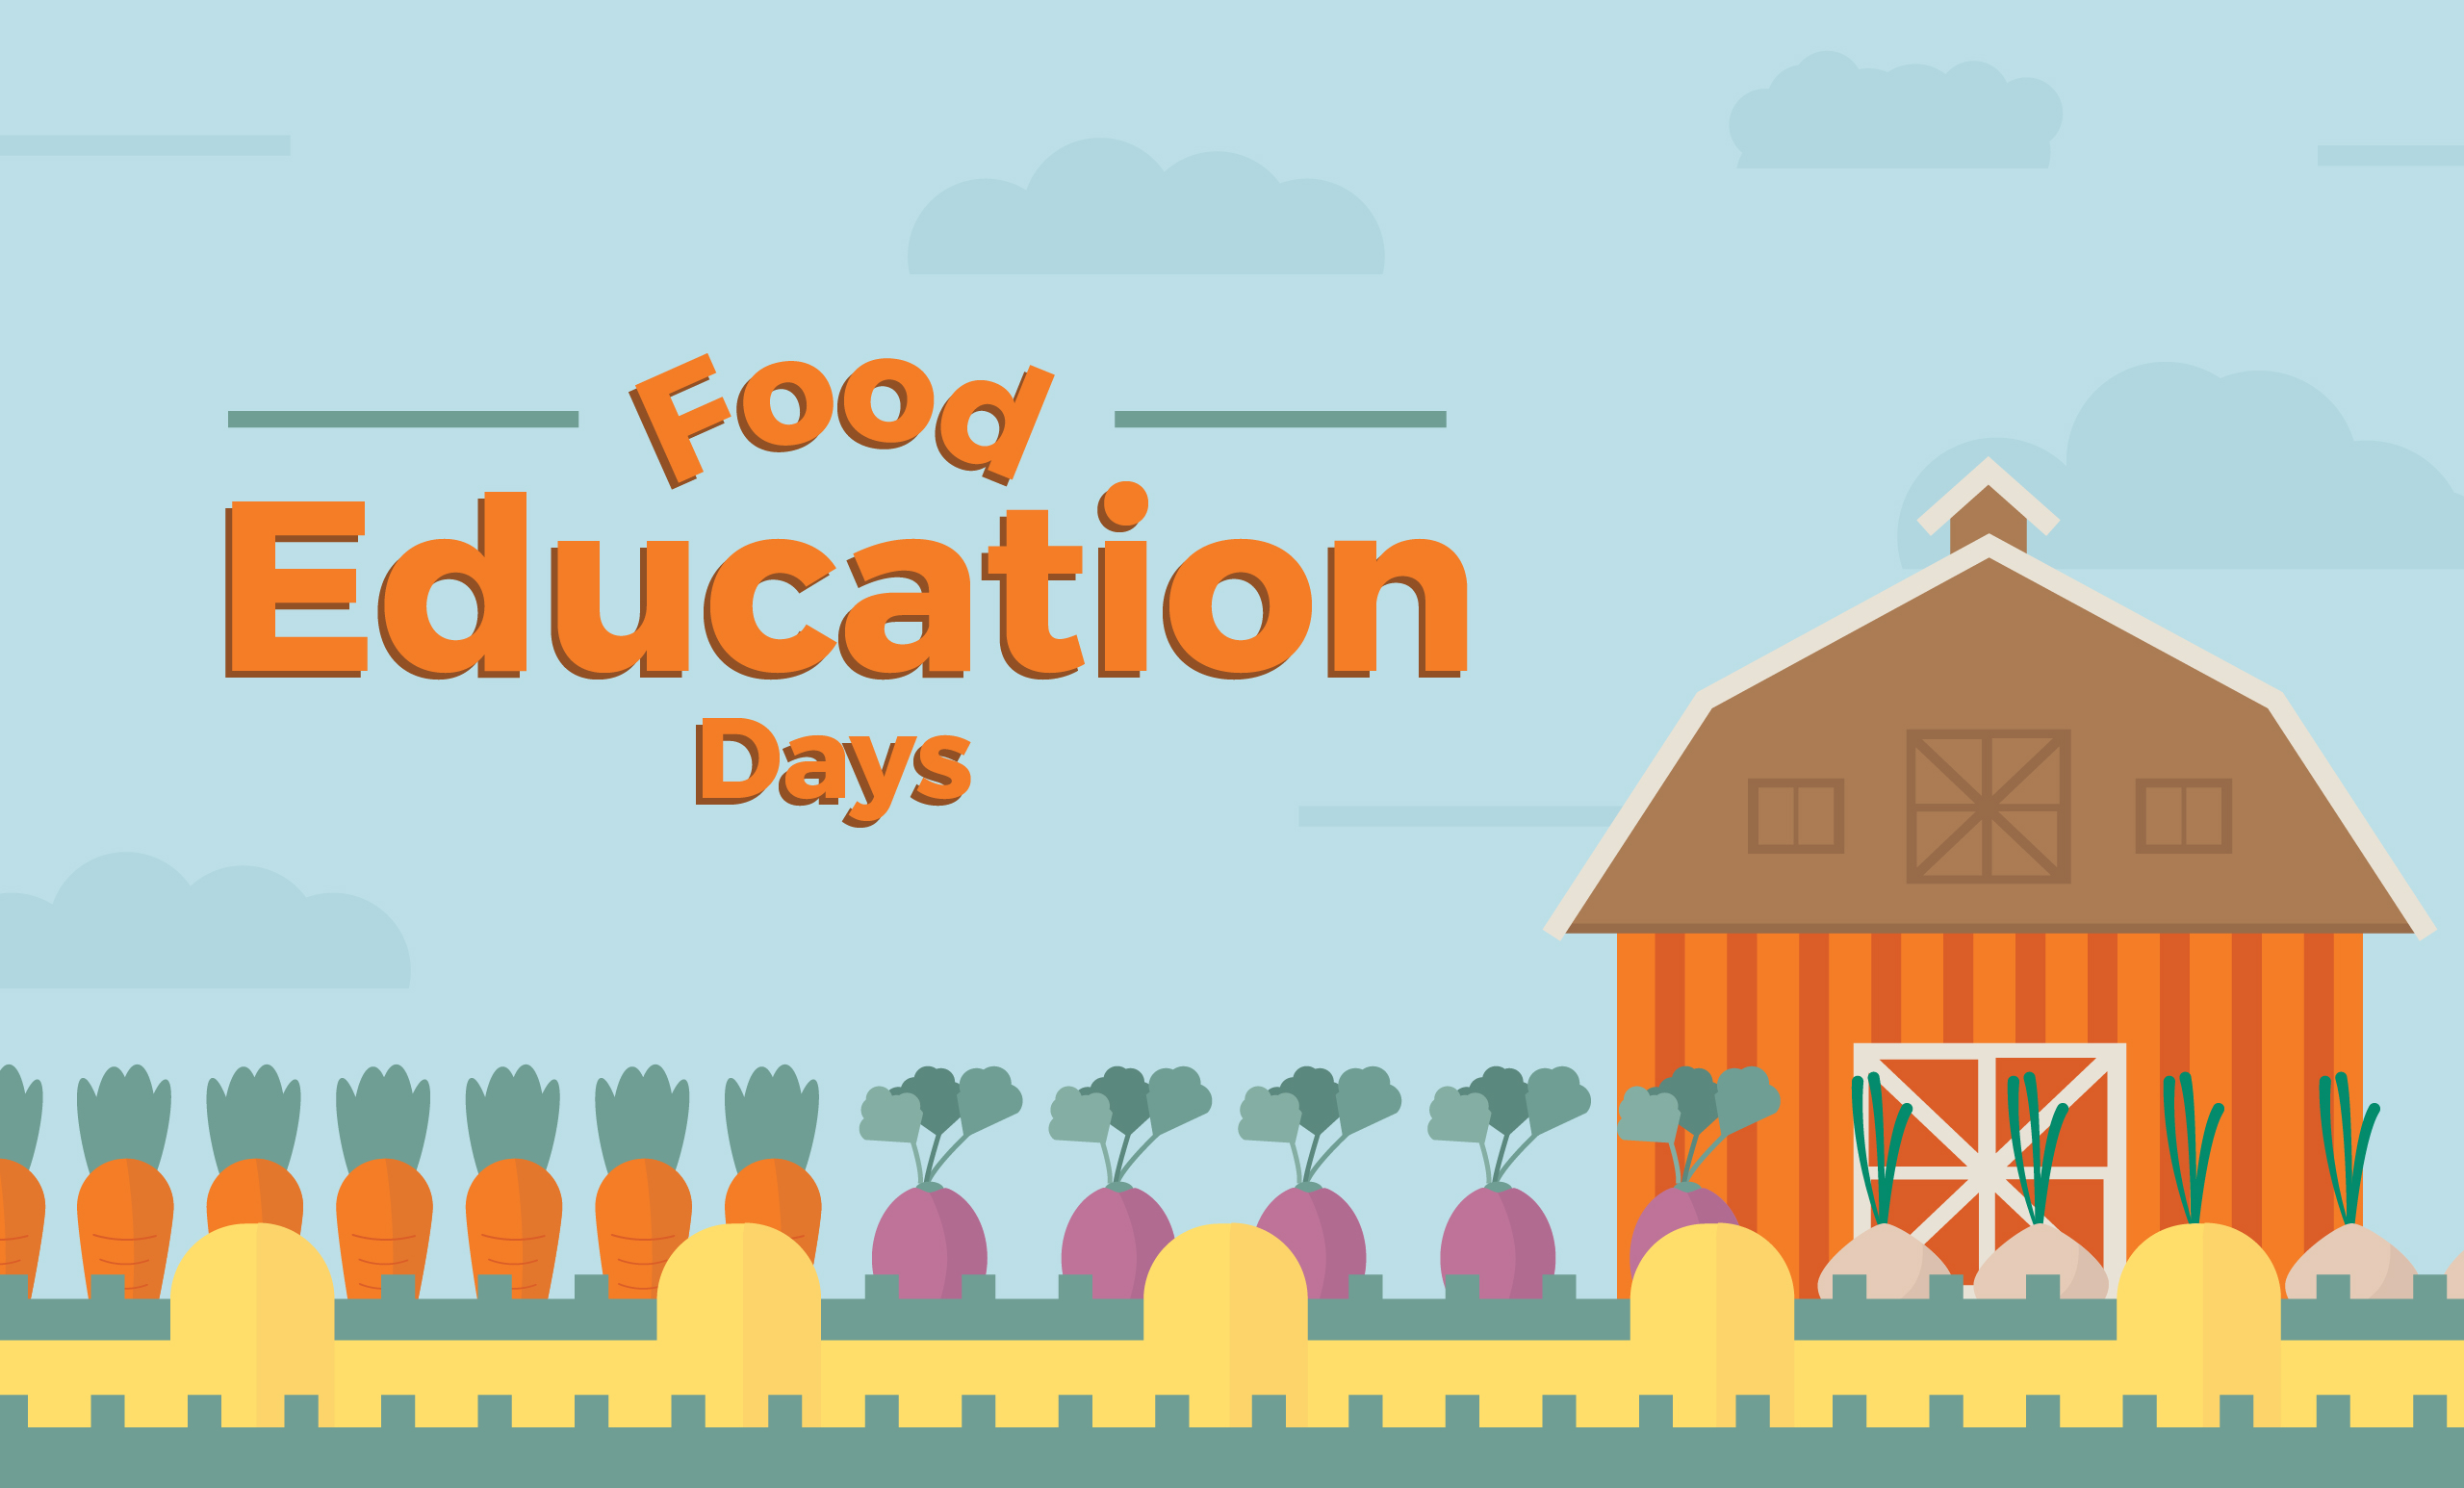 Food Education Days